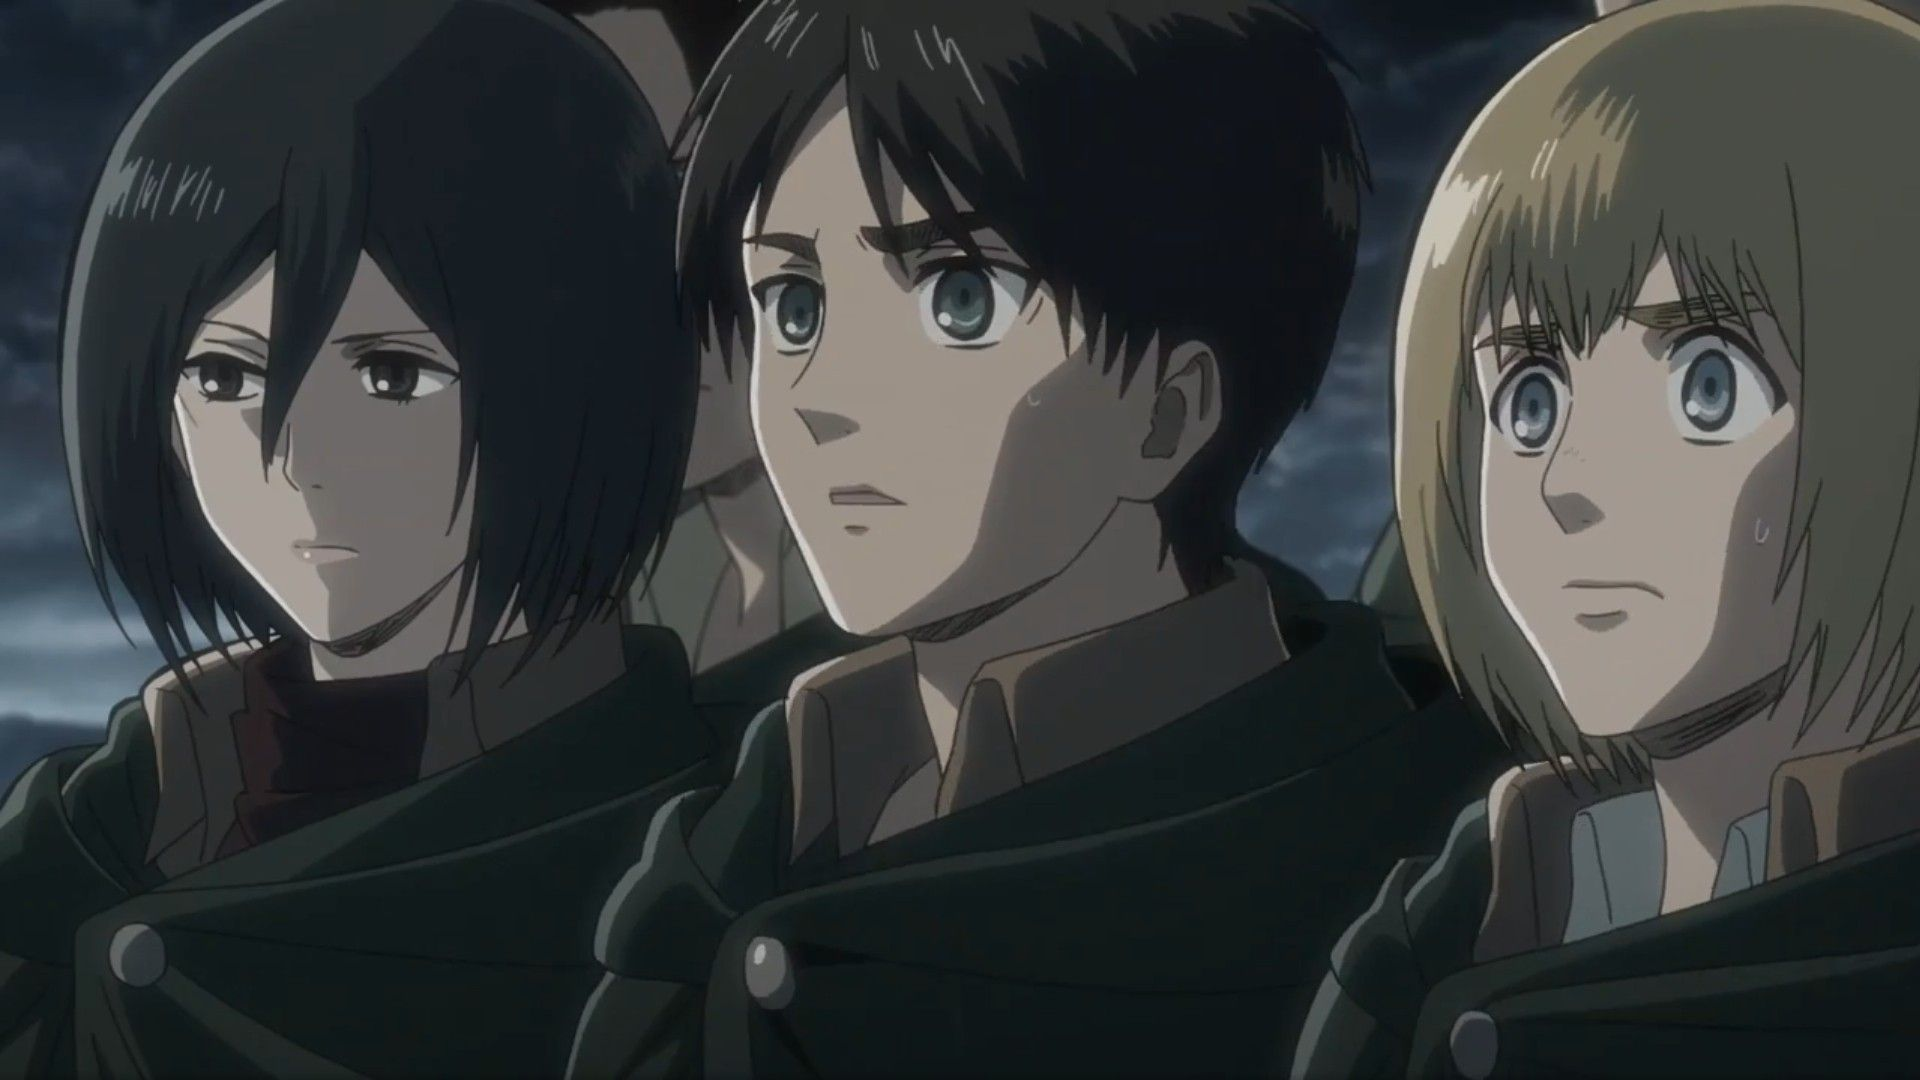 Pin by jade/ on Attack on Titan in 2020 Attack on